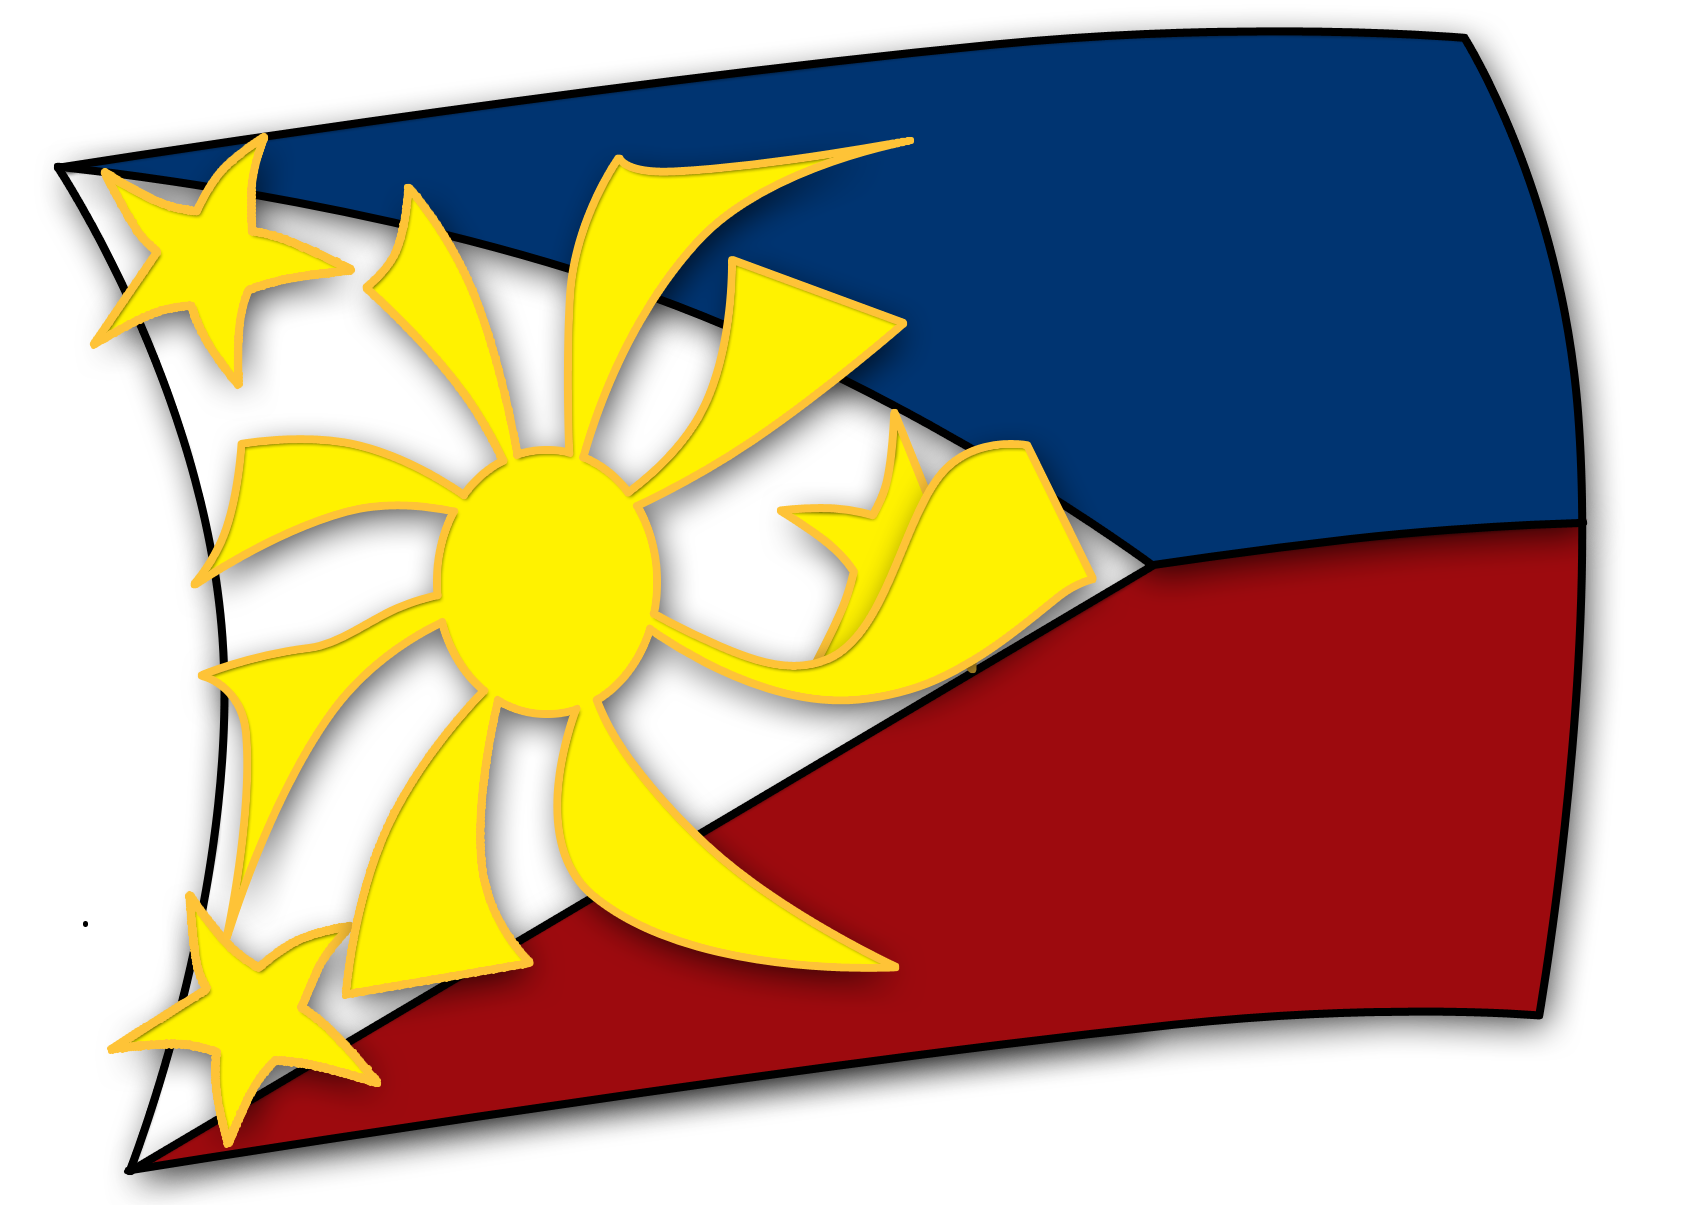 Philippine flag by neocatastrophic on deviantart philippine flag by nevermindph biocorpaavc Choice Image